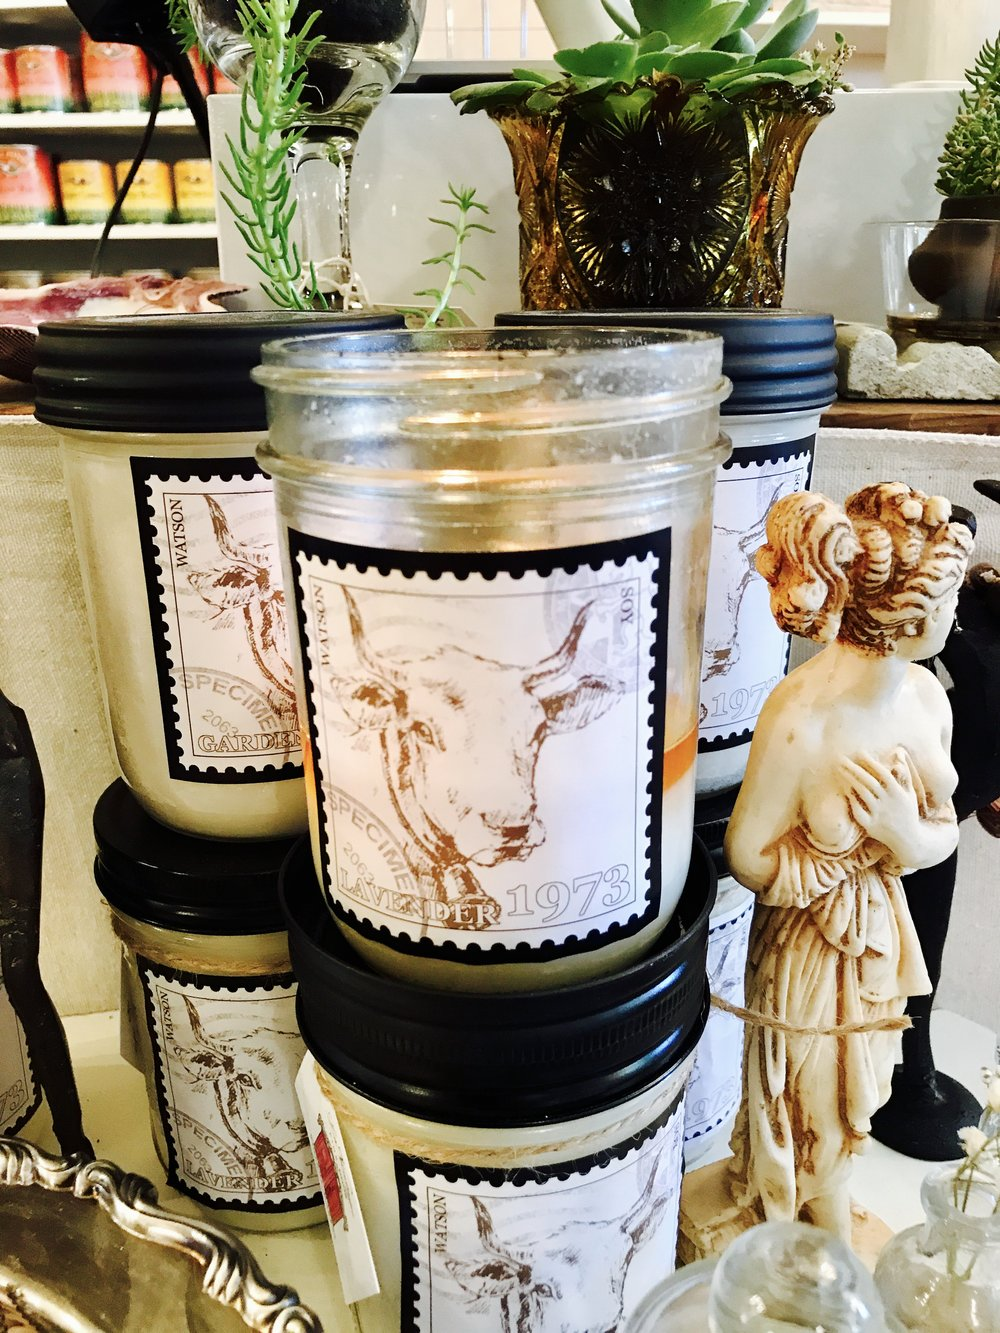 Watson Candles each $13.50 or two for $25. - Lavender, Sage, Whisky, Rosemary, Gardenia Coming soon NEW scents:Pumpkin Pie, Christmas Tree, Coffee with Gingerbread